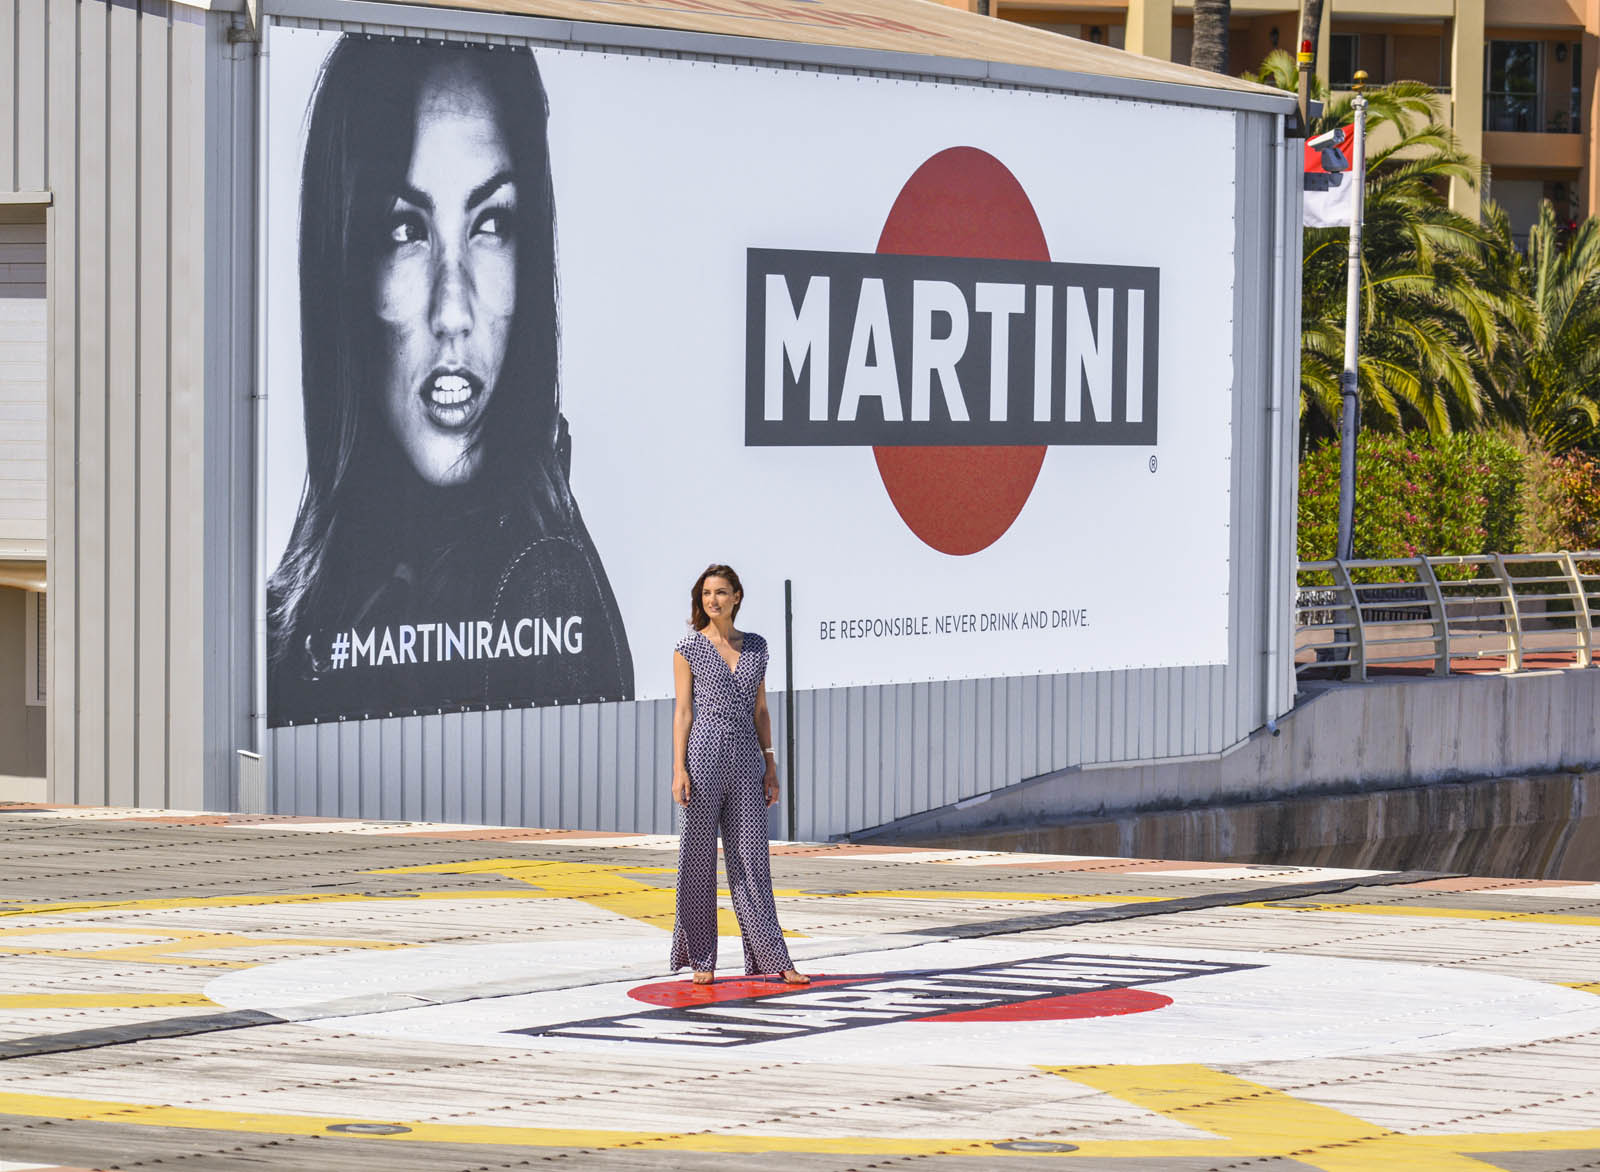 Martini_Monaco_Billboard_04